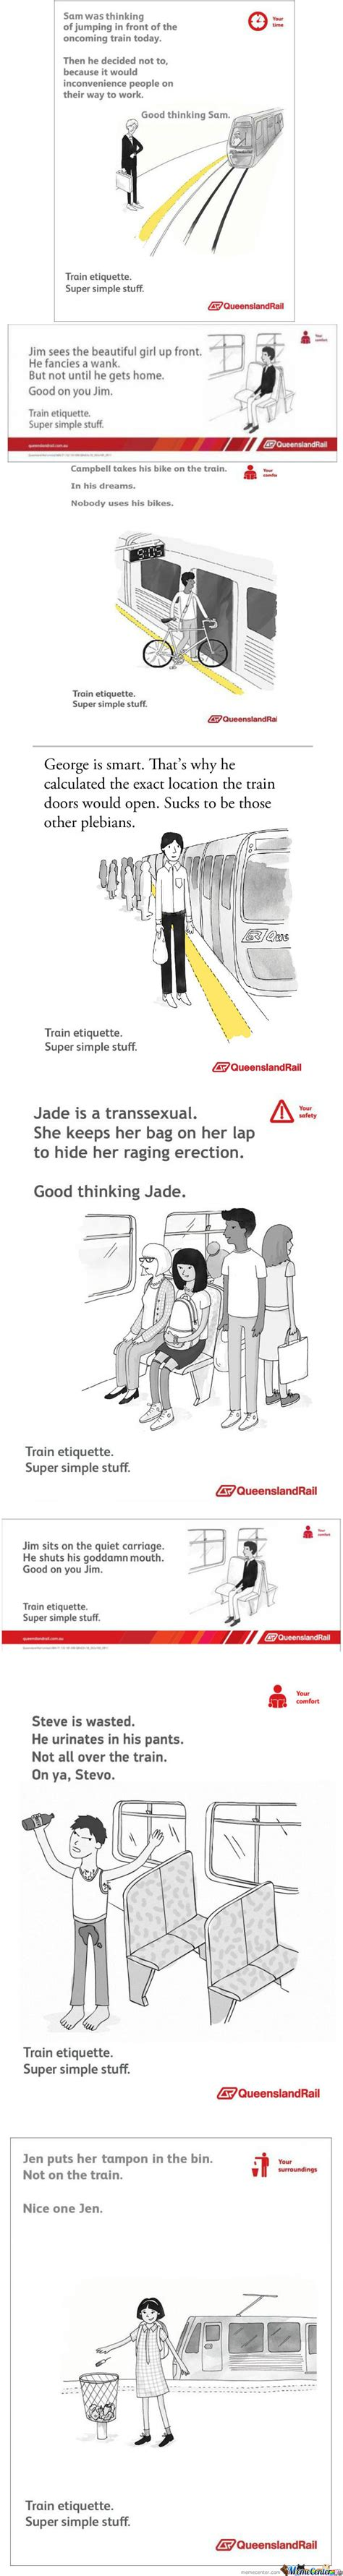 Queensland Rail Meme - queensland rail train etiquette super simple stuff by marcoa84 meme center